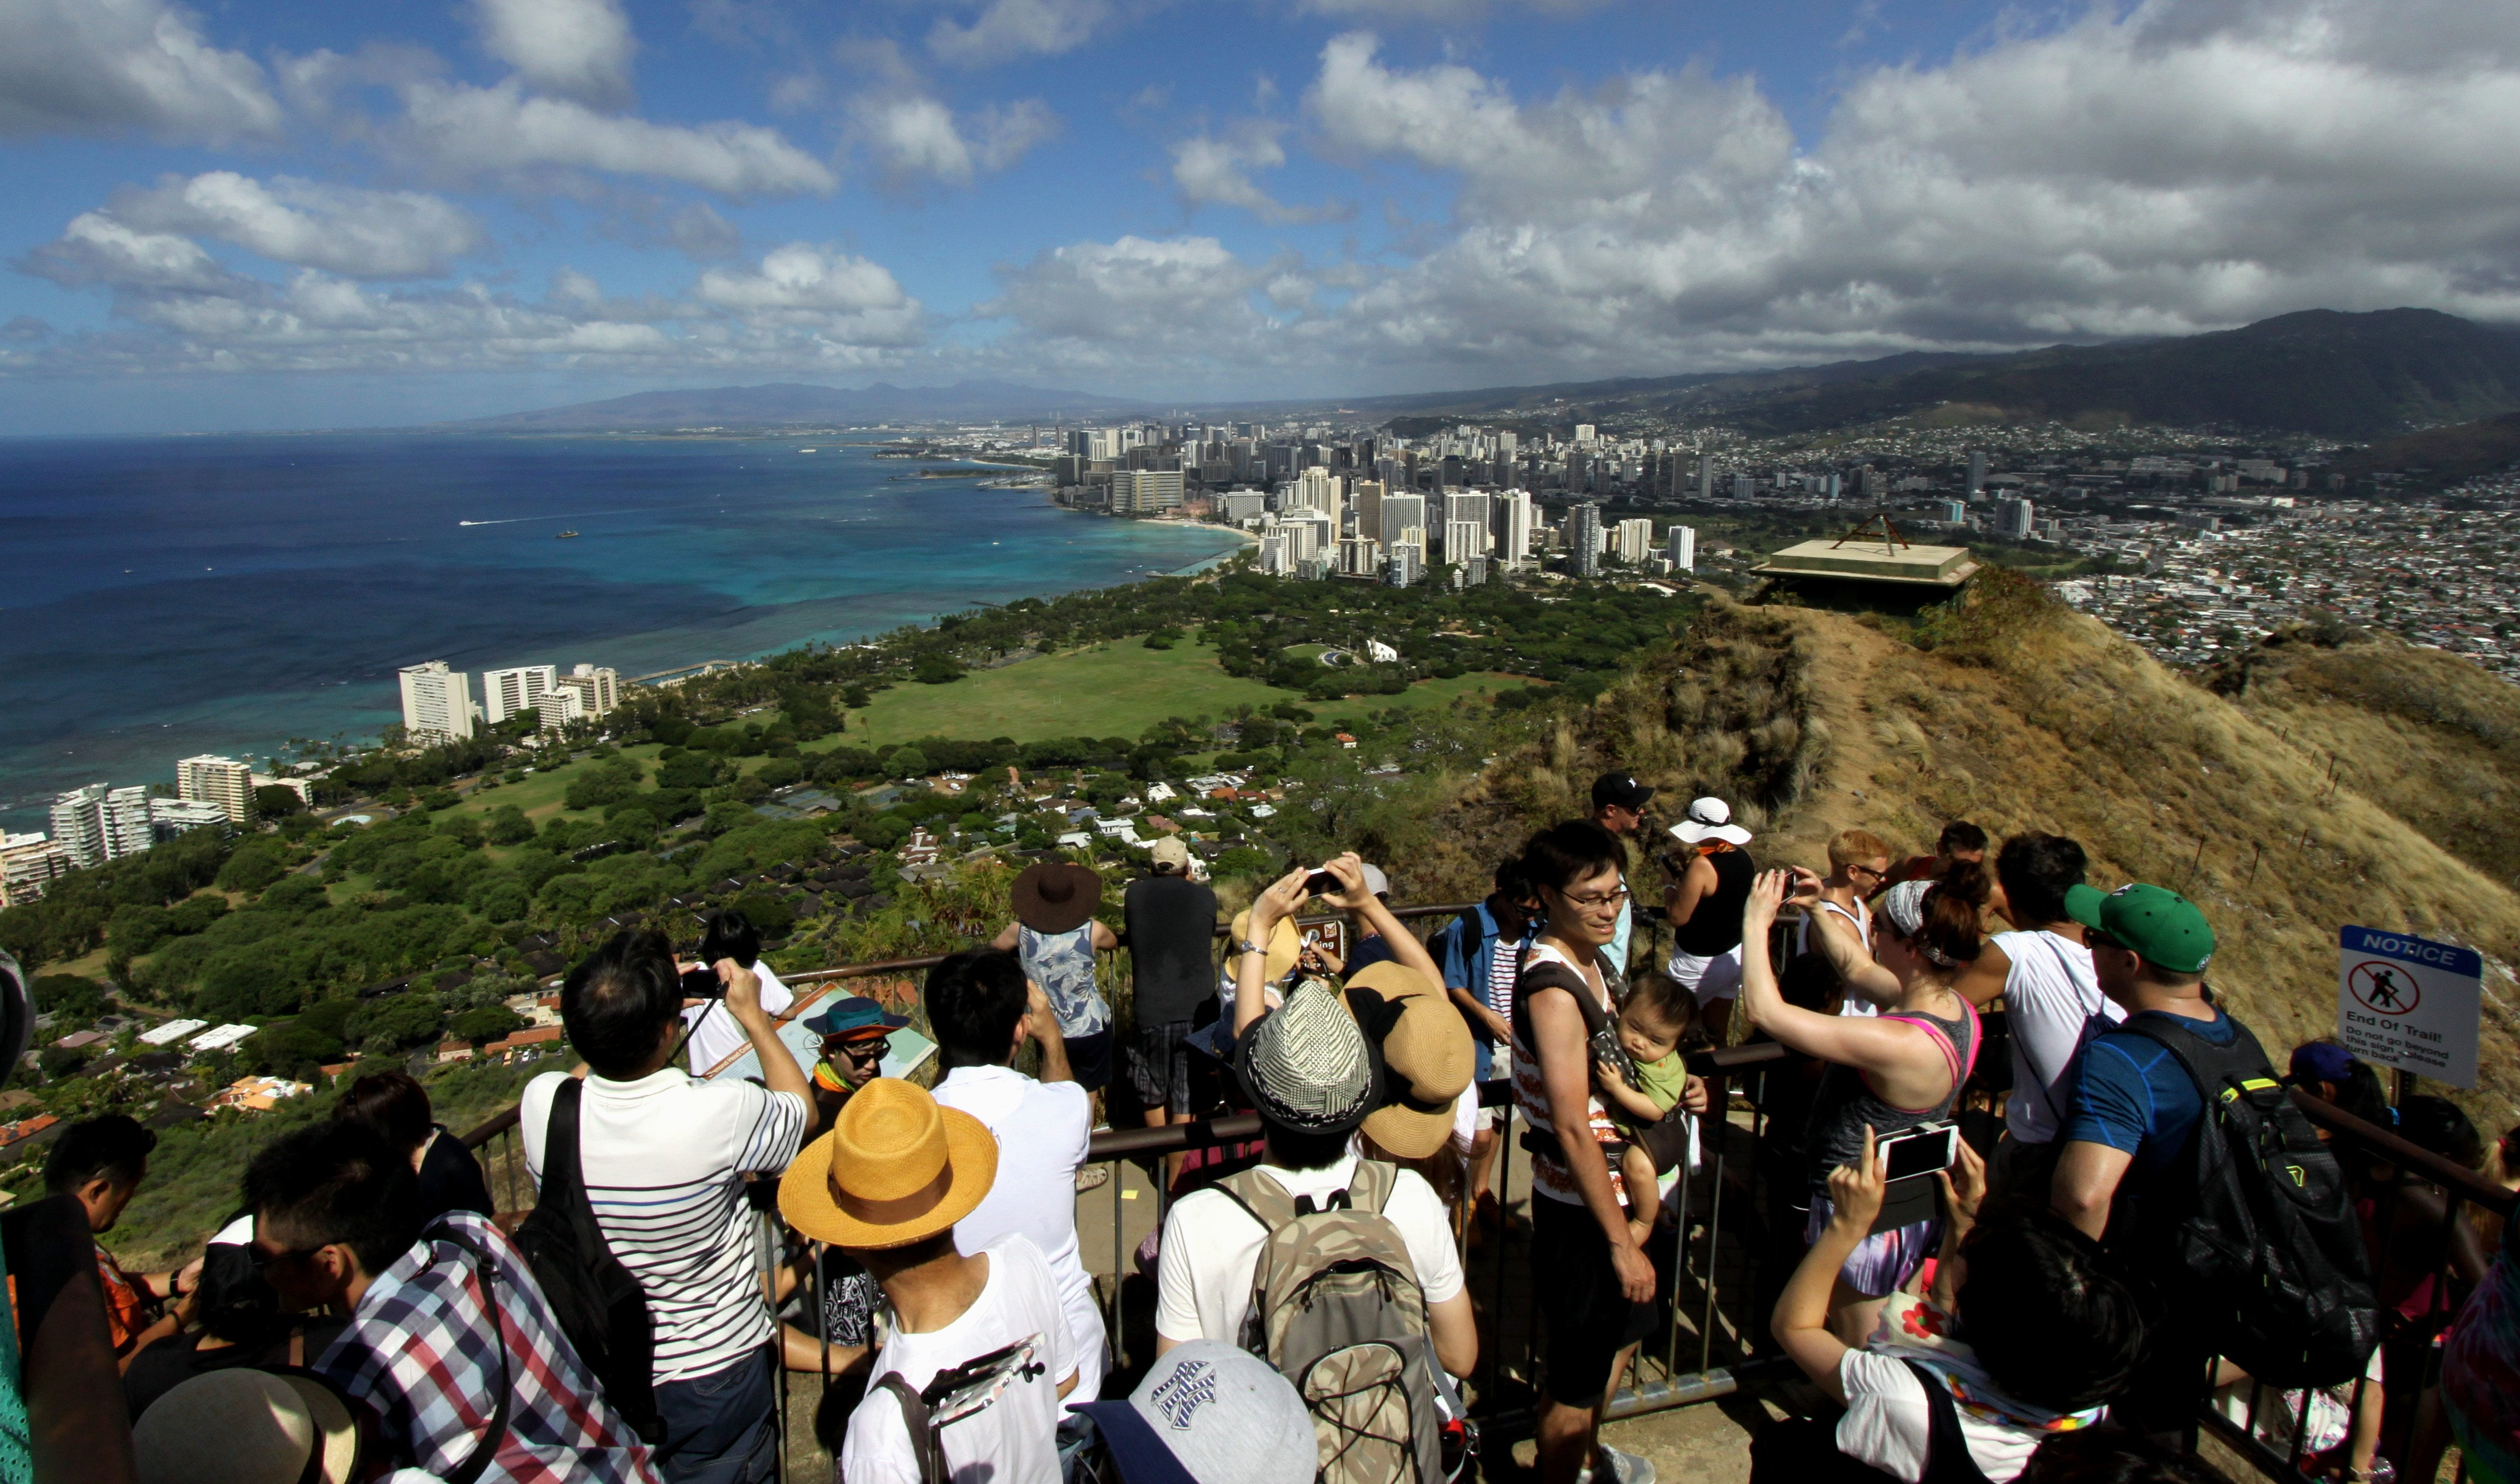 Crowds in Hawaii